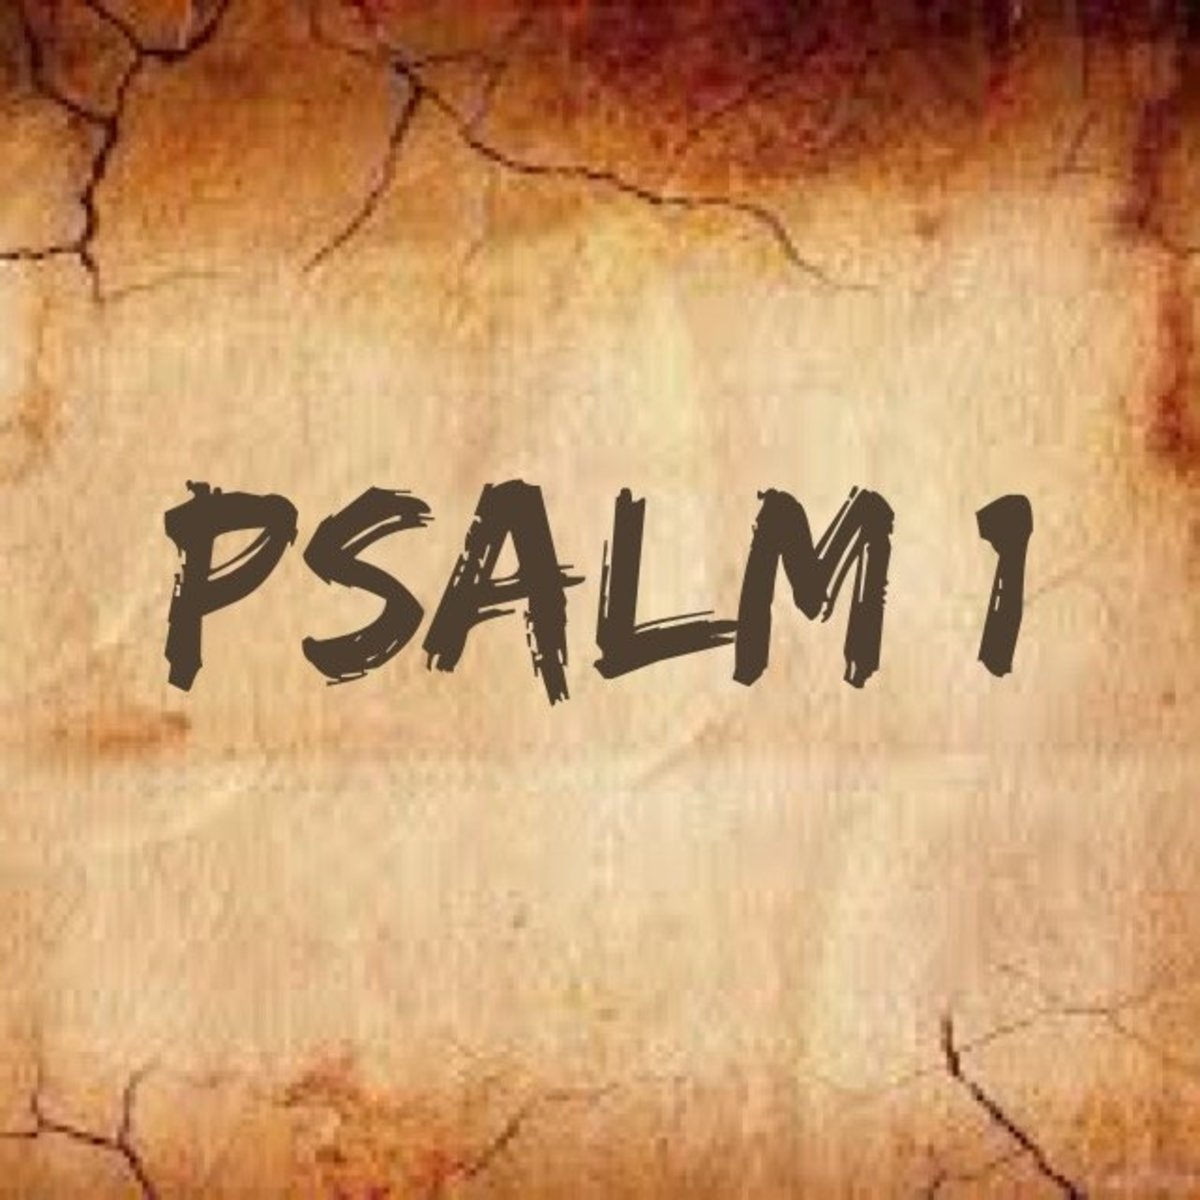 Psalm 1: Explained in Detail